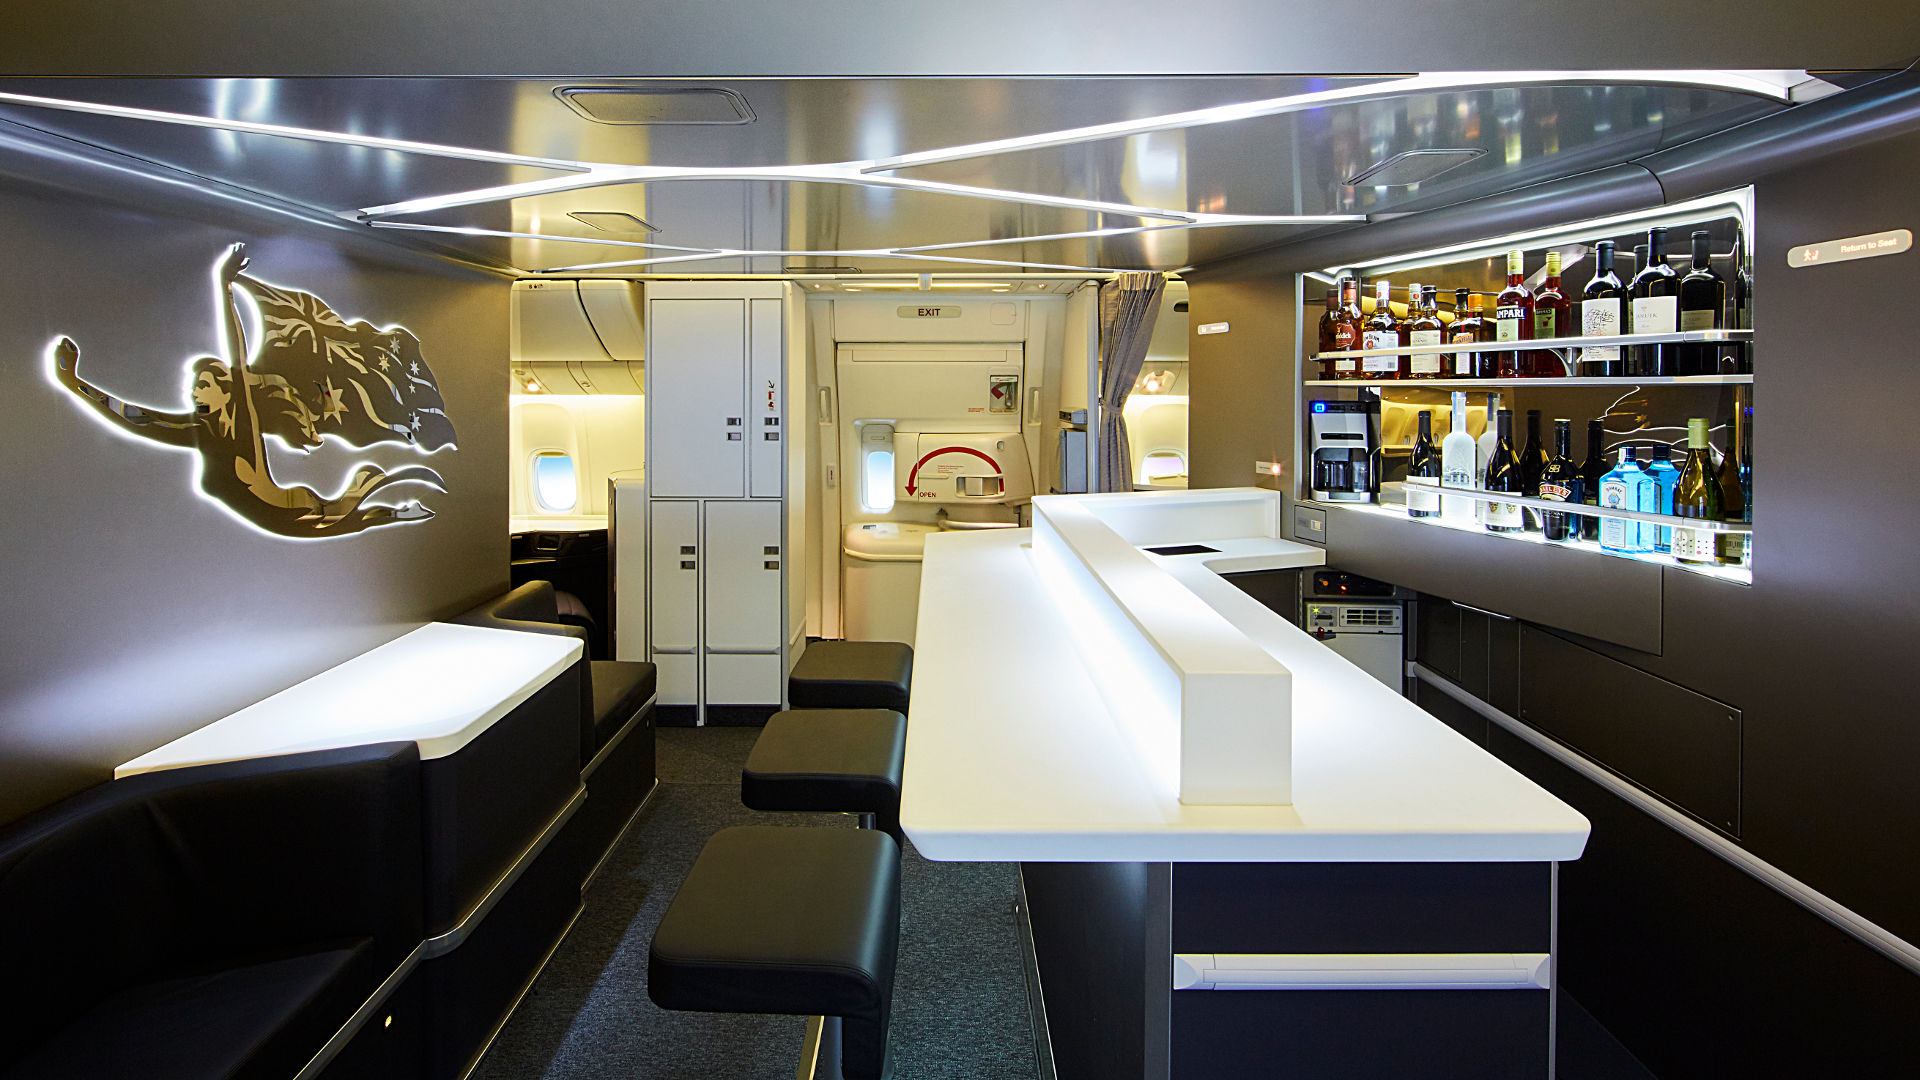 High fliers: 5 new business class suites to spend your miles on